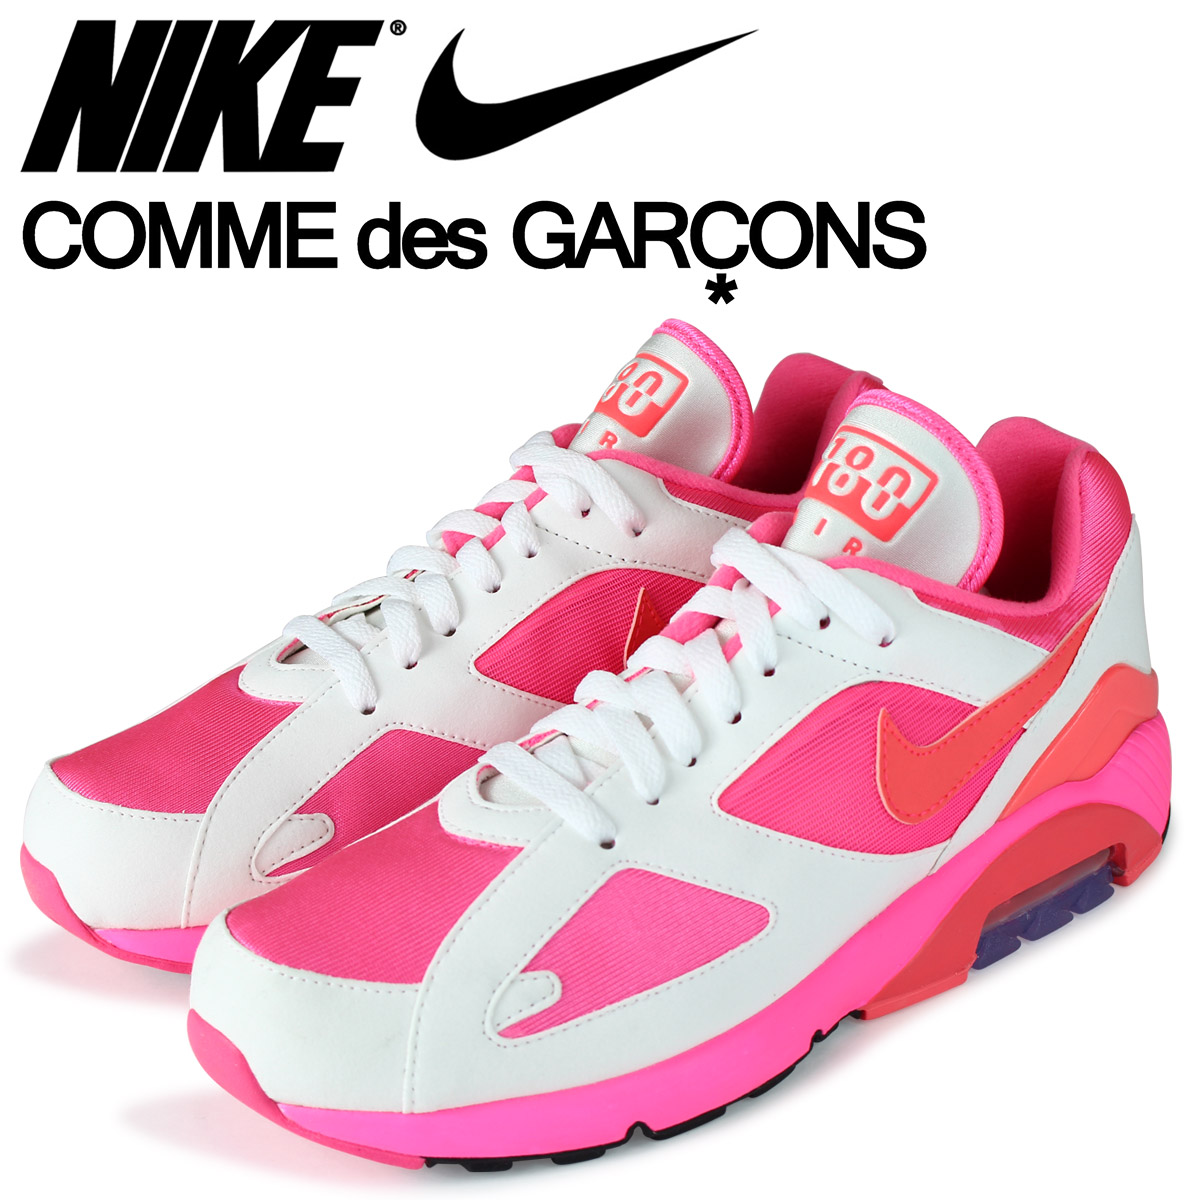 NIKE ナイキ コムデギャルソン エアマックス180 スニーカー メンズ COMME des GARCONS HOMME PLUS AIR MAX 180 CDG AO4641-600 ピンク